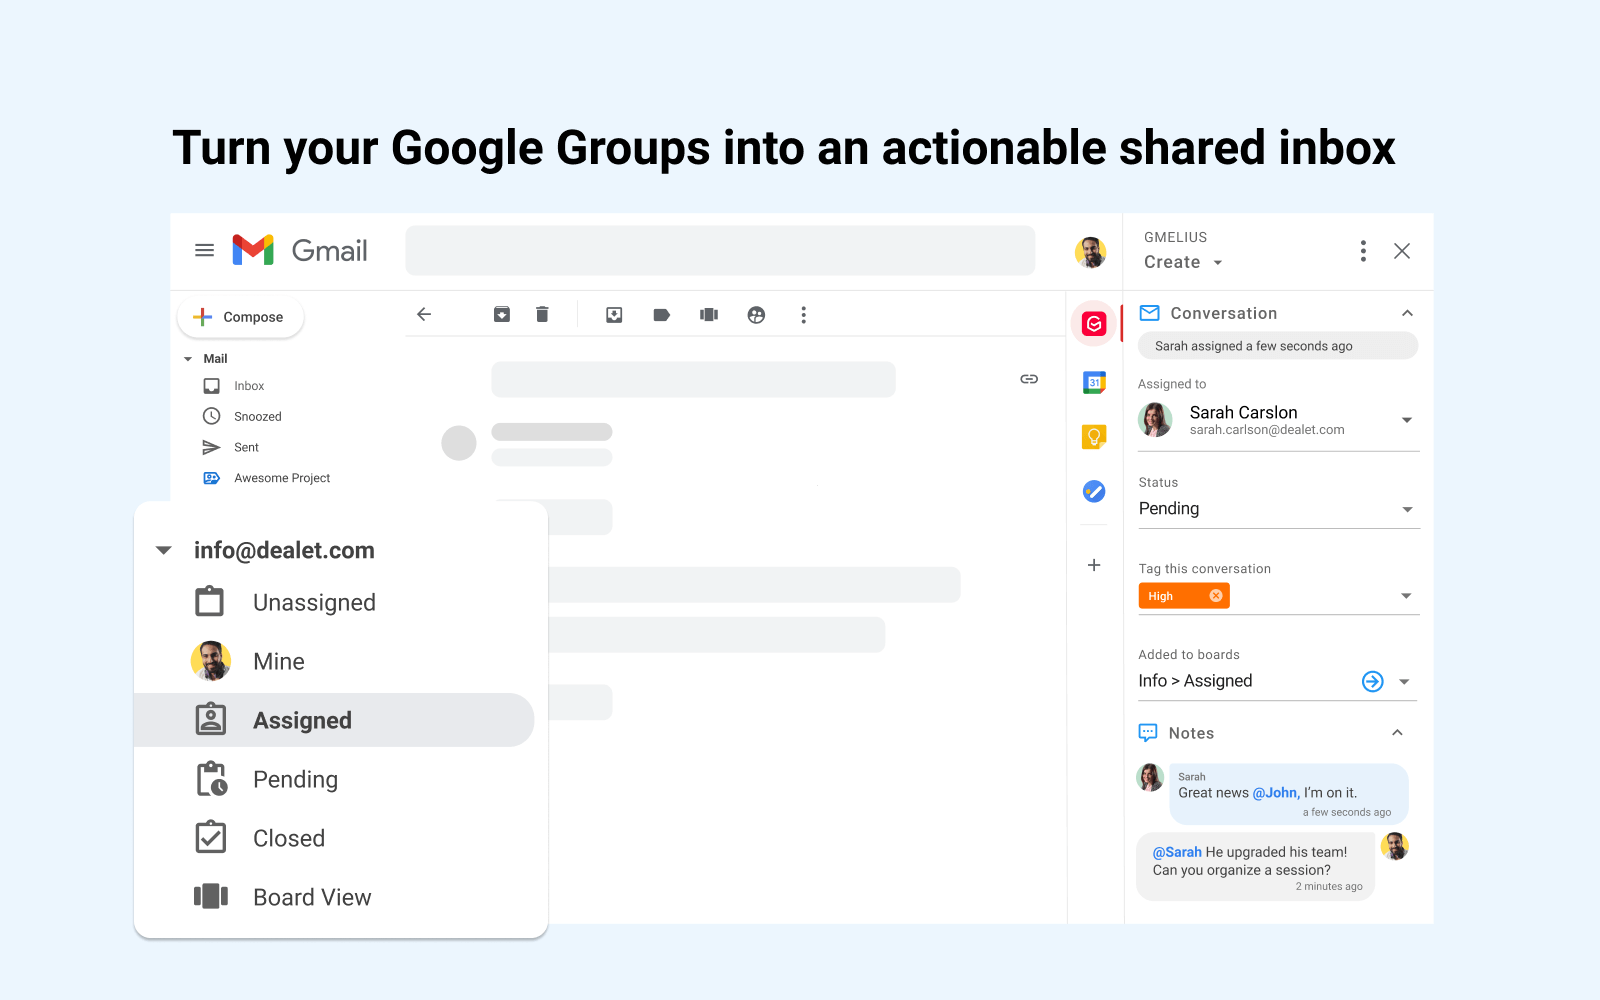 Turn your Google Groups into an actionable shared inbox